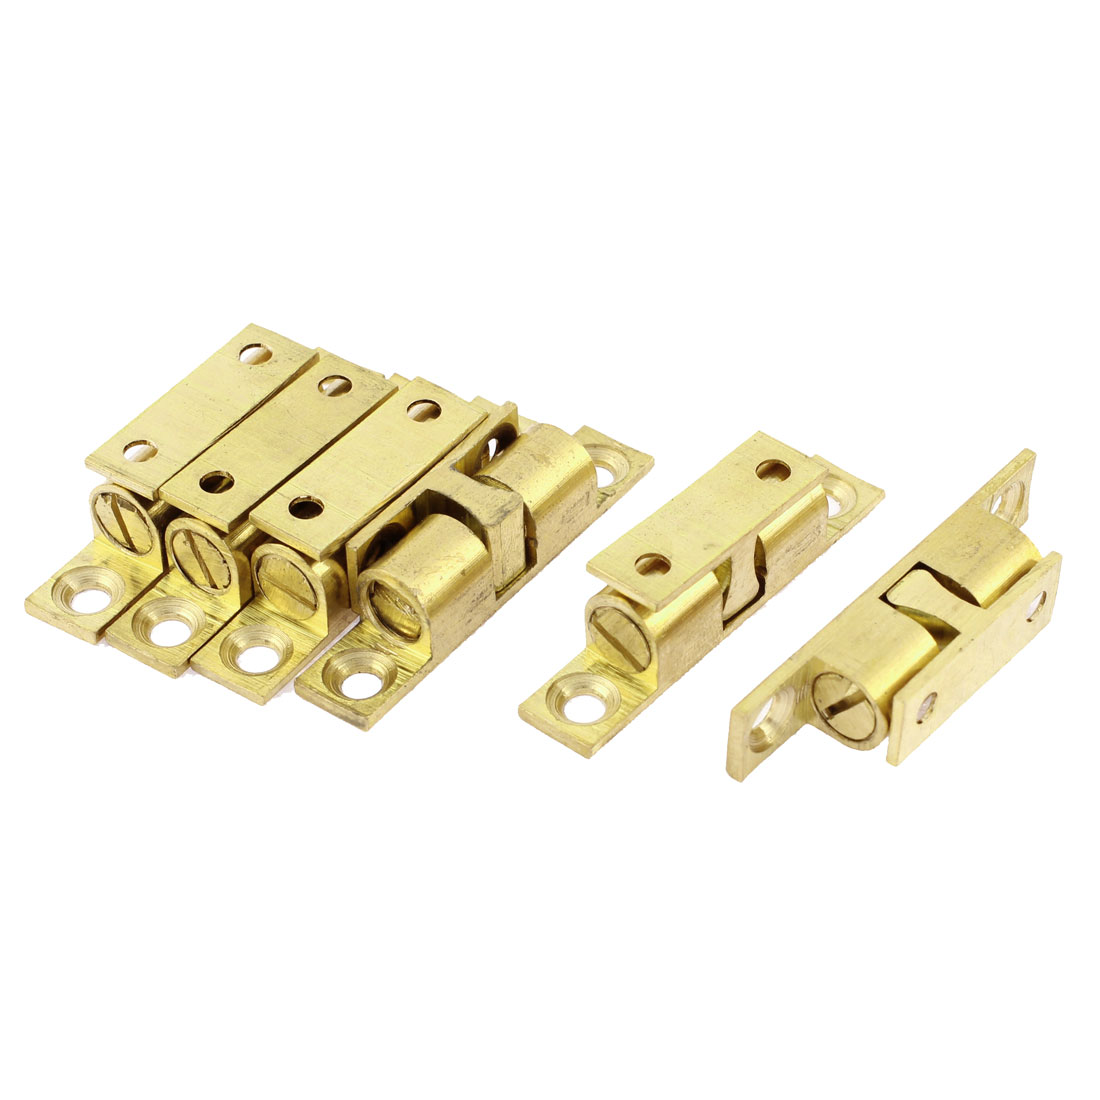 Home Door Double Ball Catch Hardware 40mm Long 6Pcs